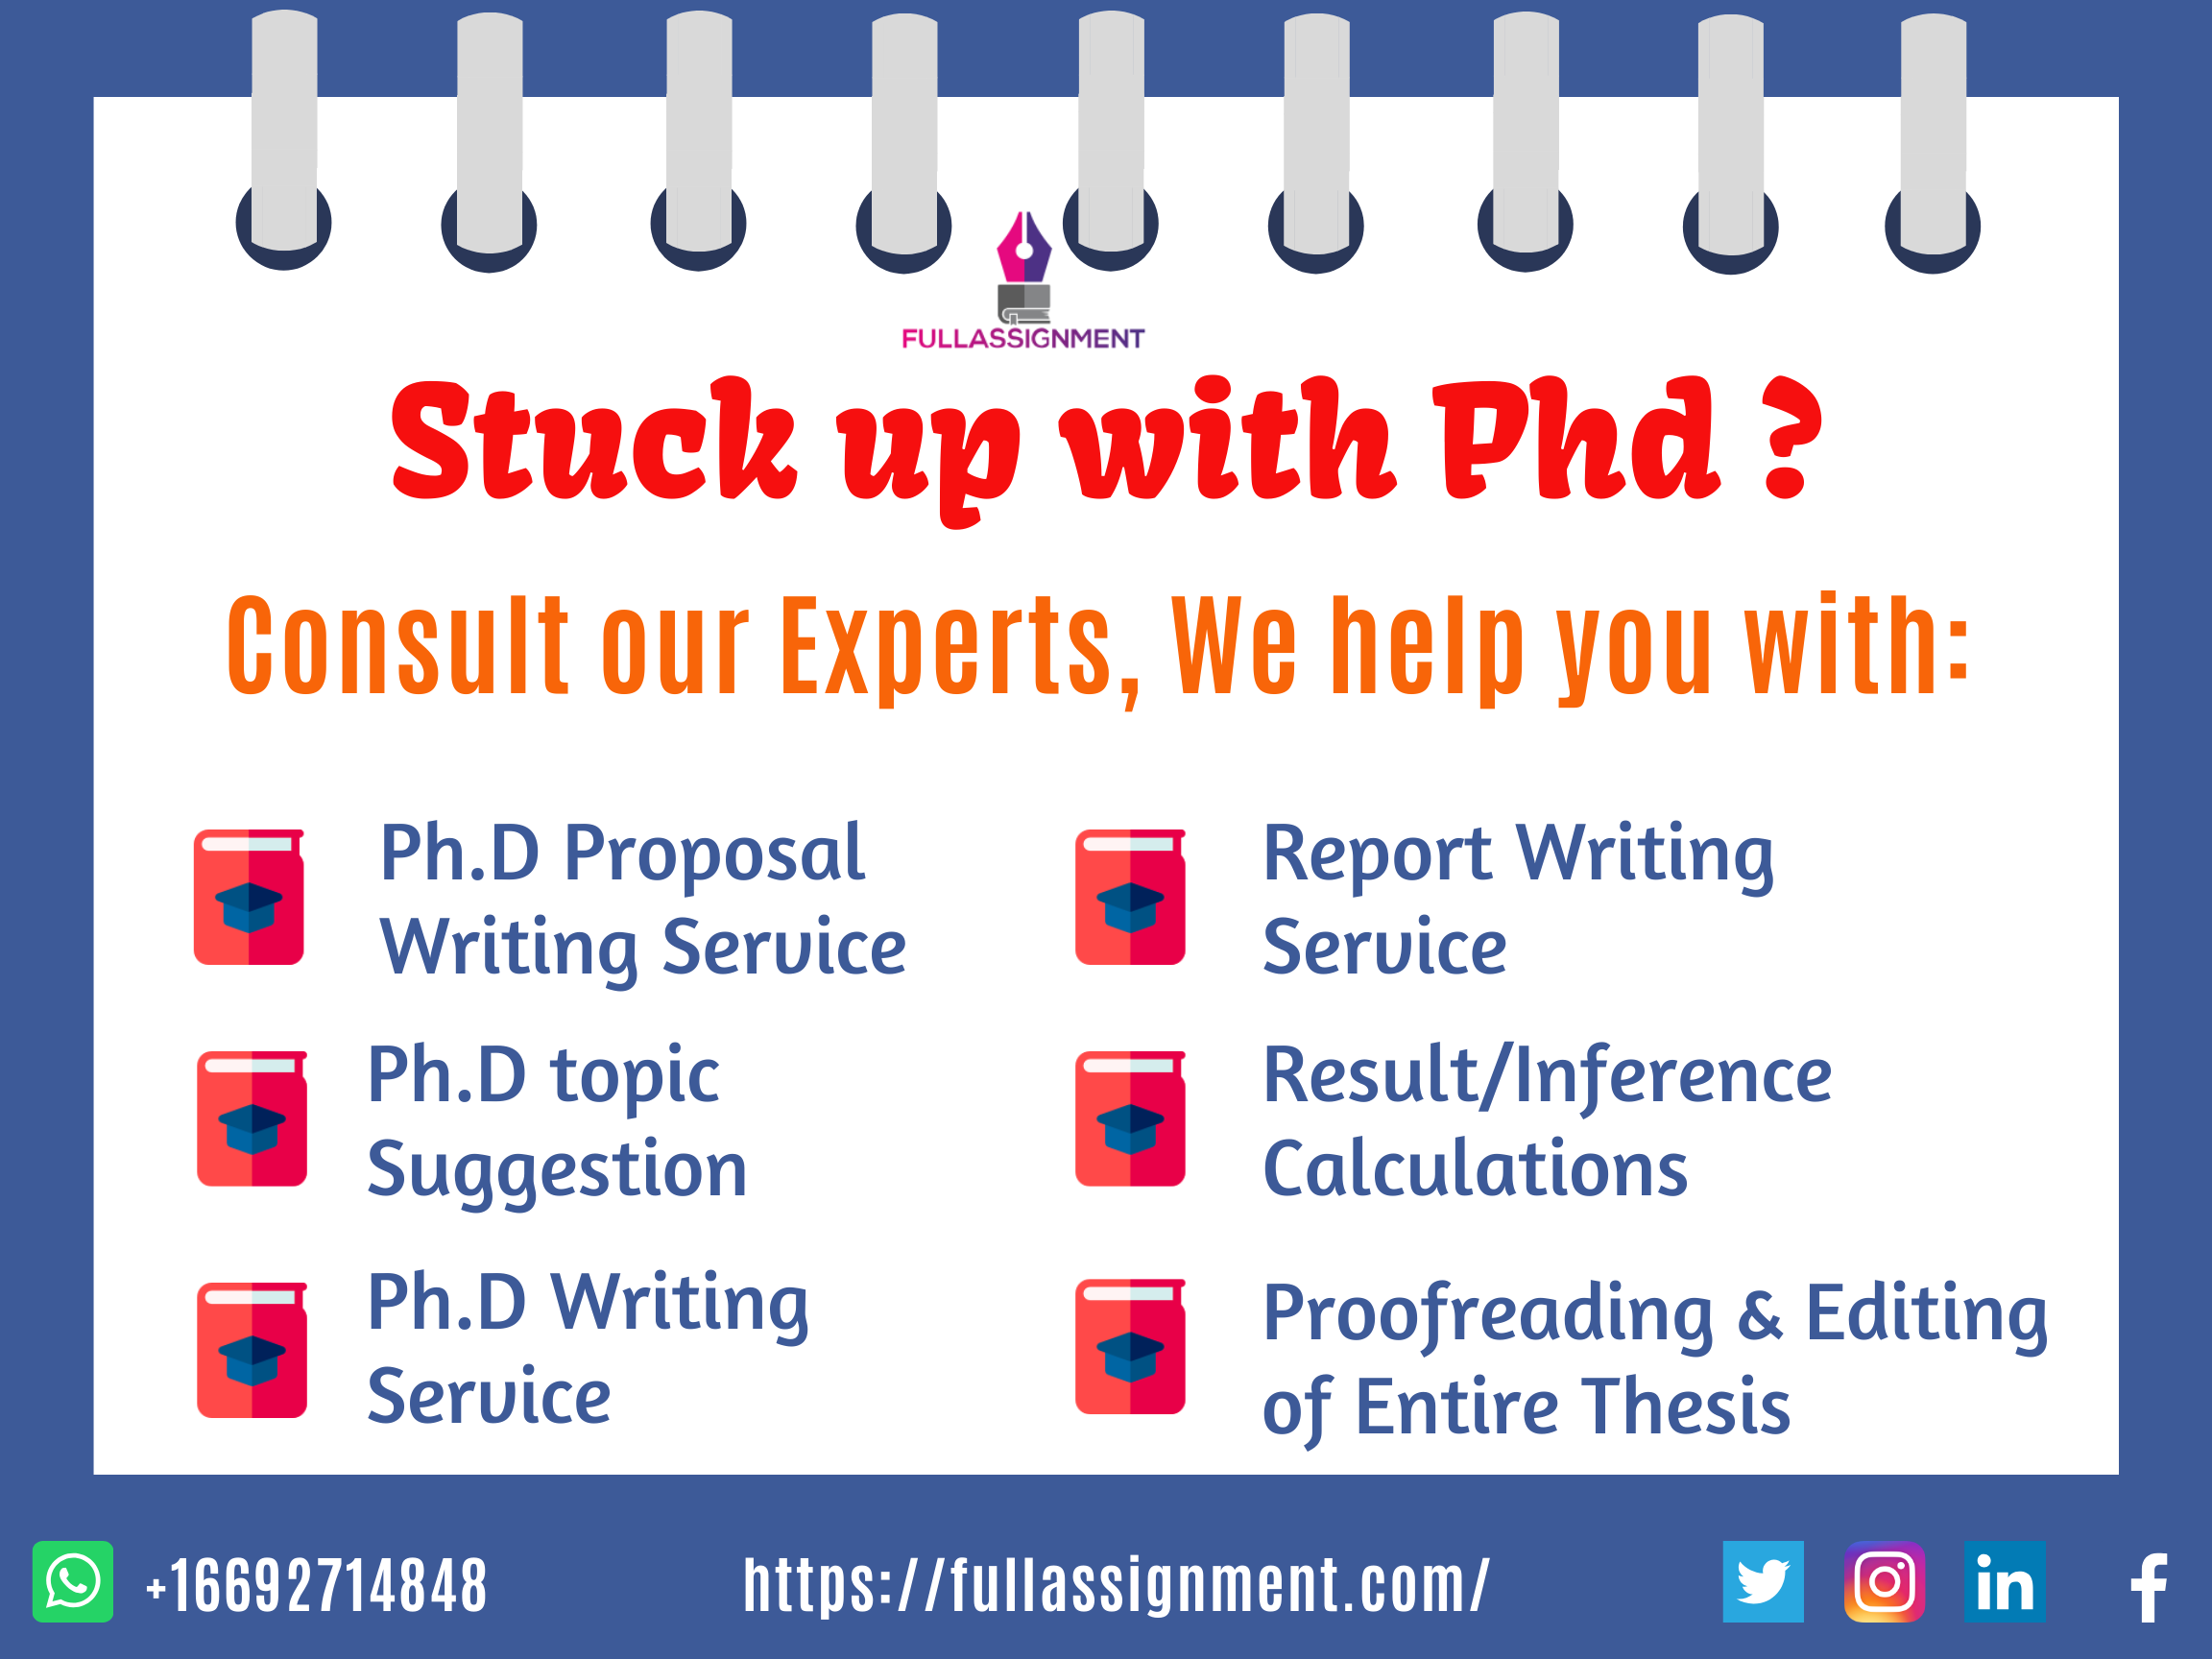 Cheap dissertation results writer services for phd custom expository essay editor websites au